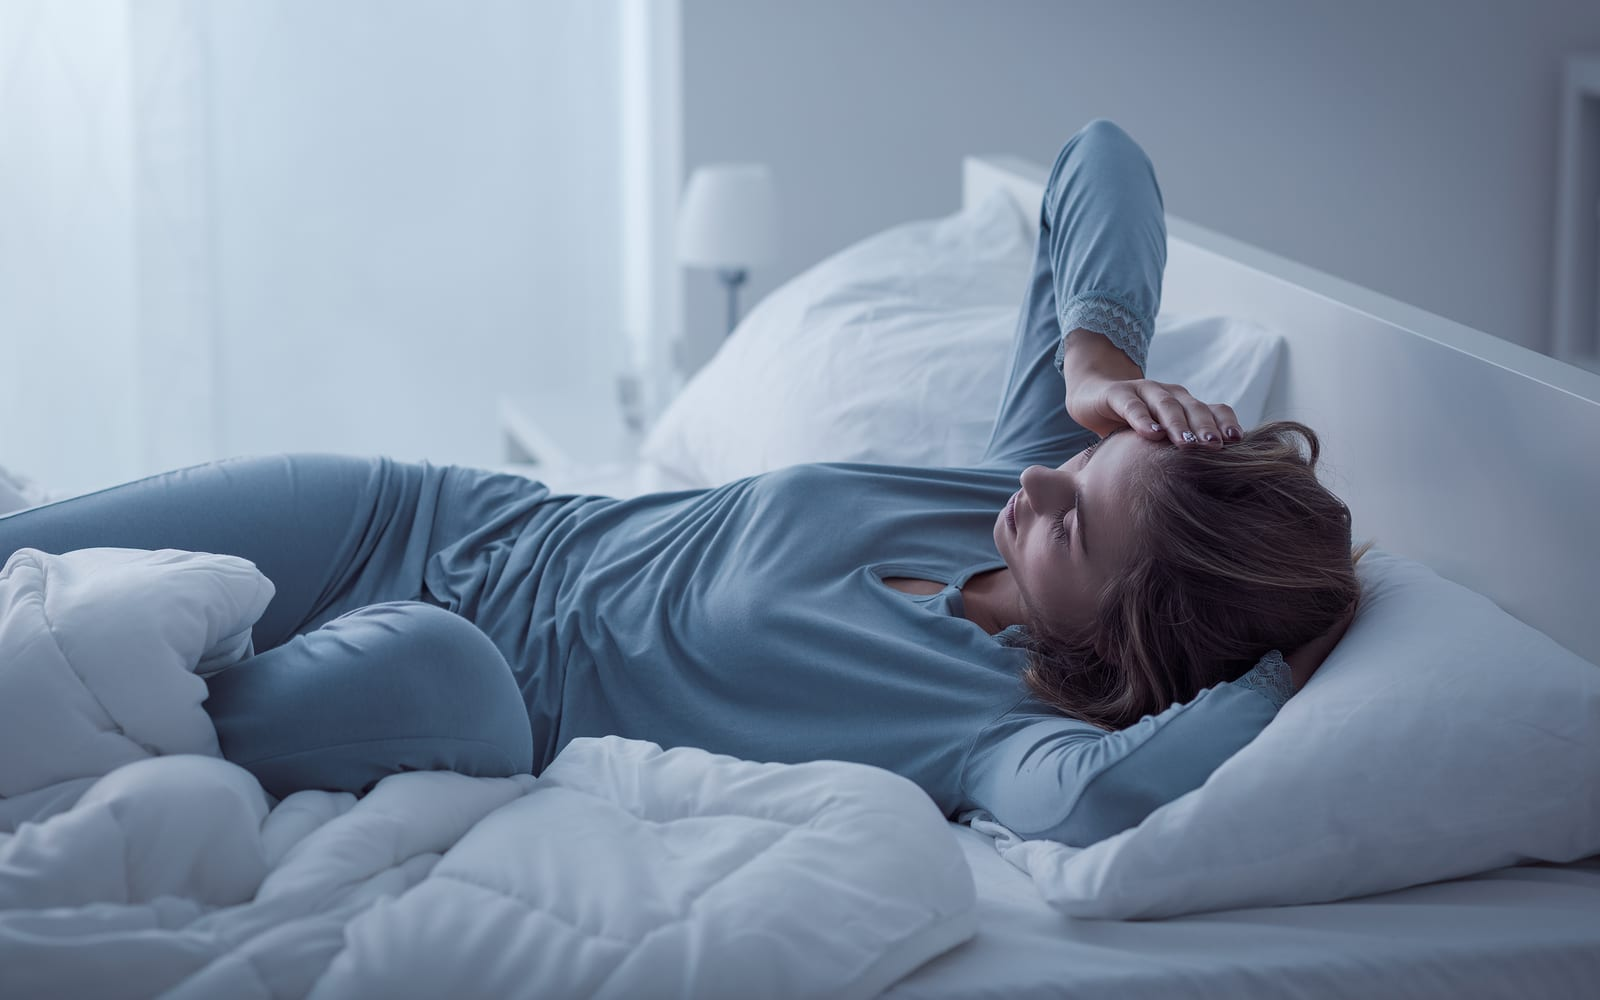 Depressed woman awake in the night she is exhausted and suffering from insomnia